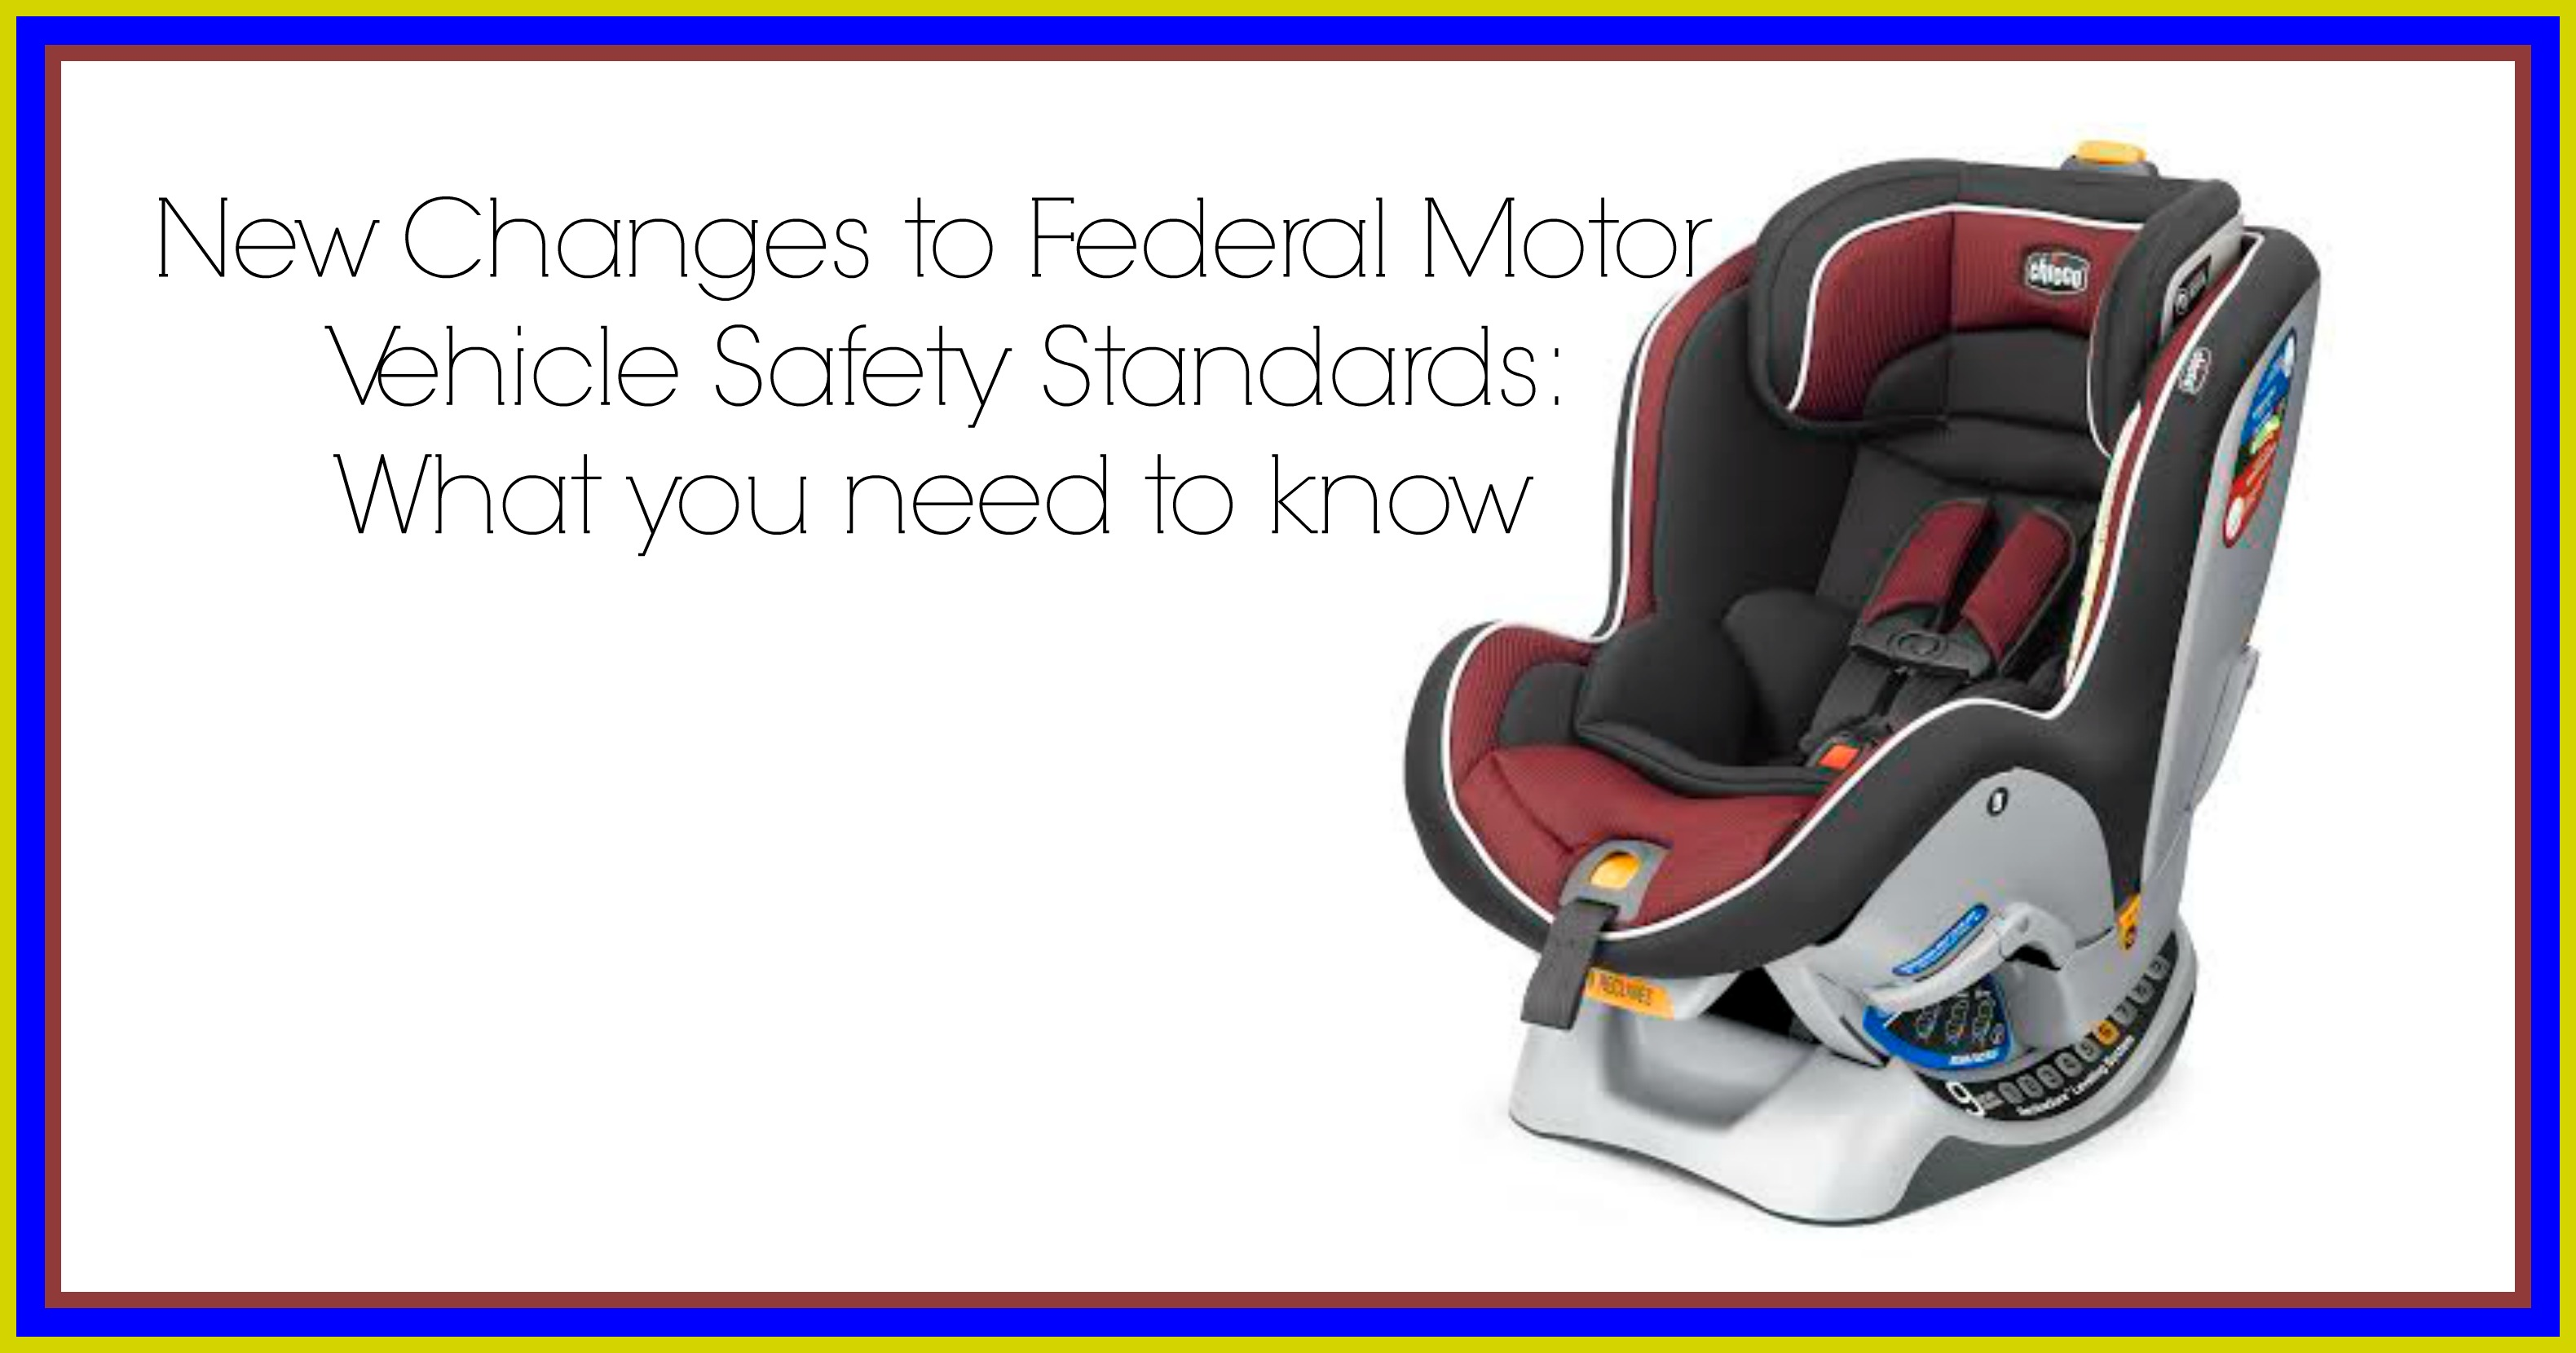 New changes to federal motor vehicle safety standards Motor vehicle safety